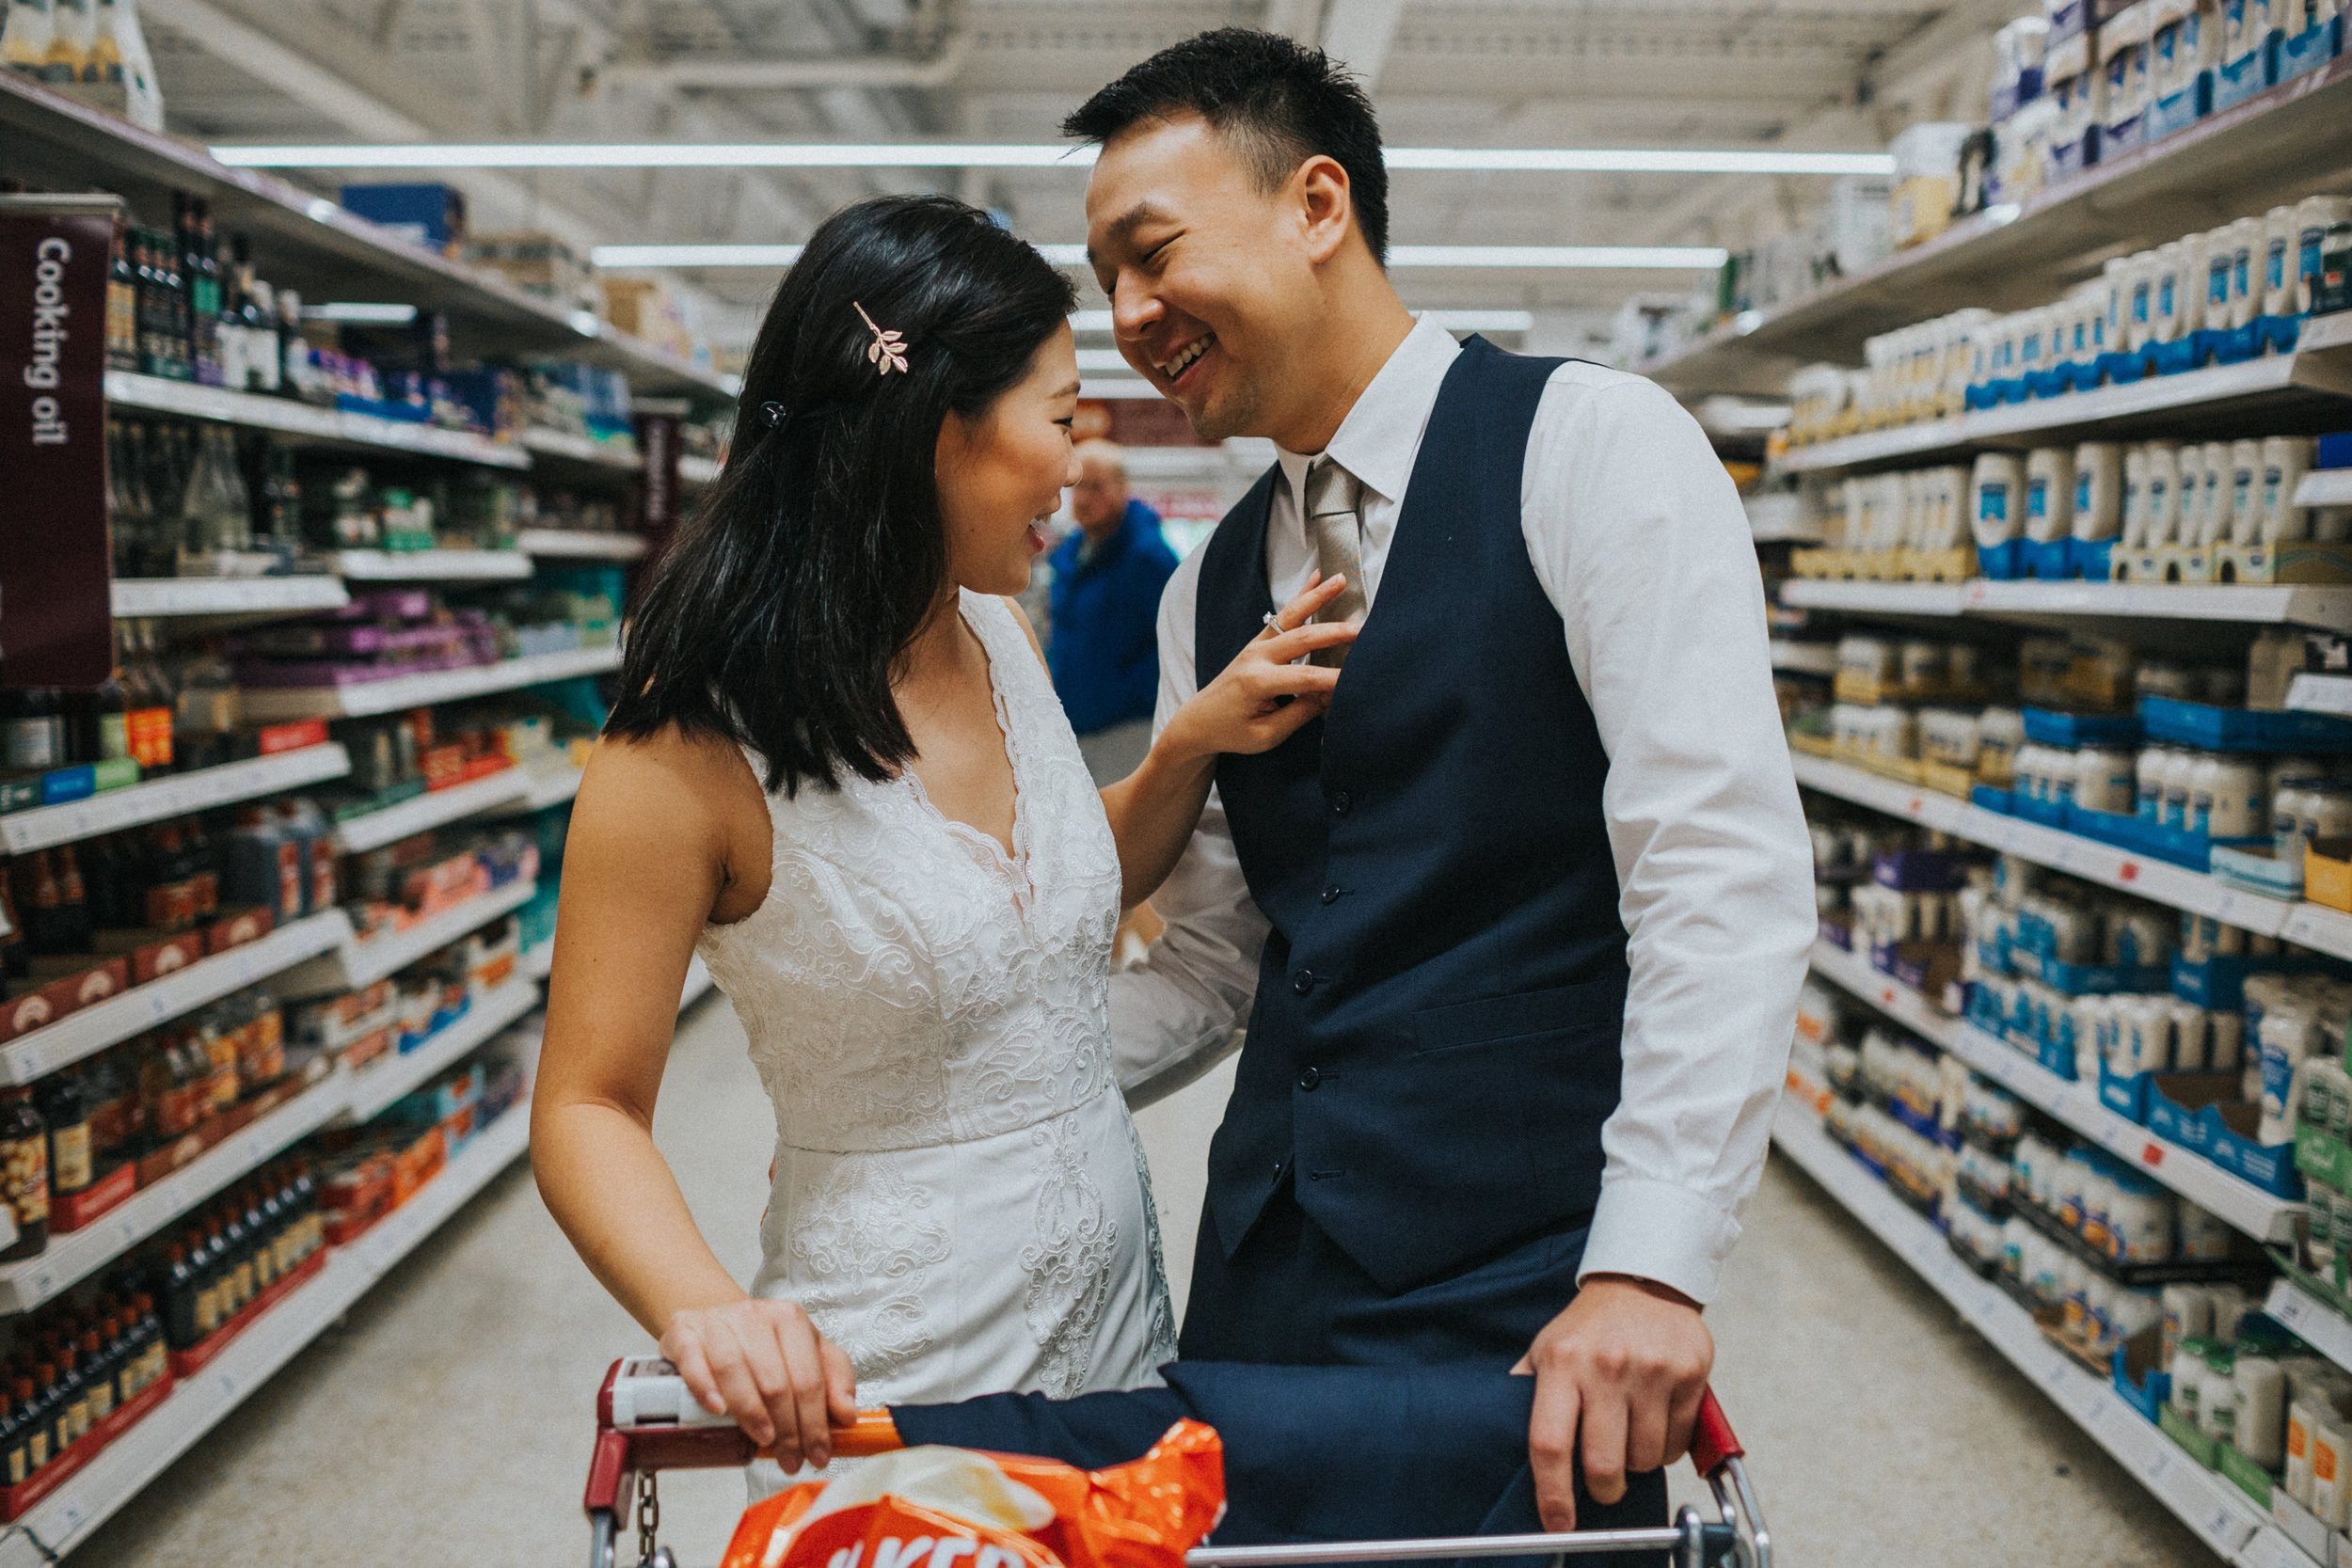 Couple have a moment together in supermarket.